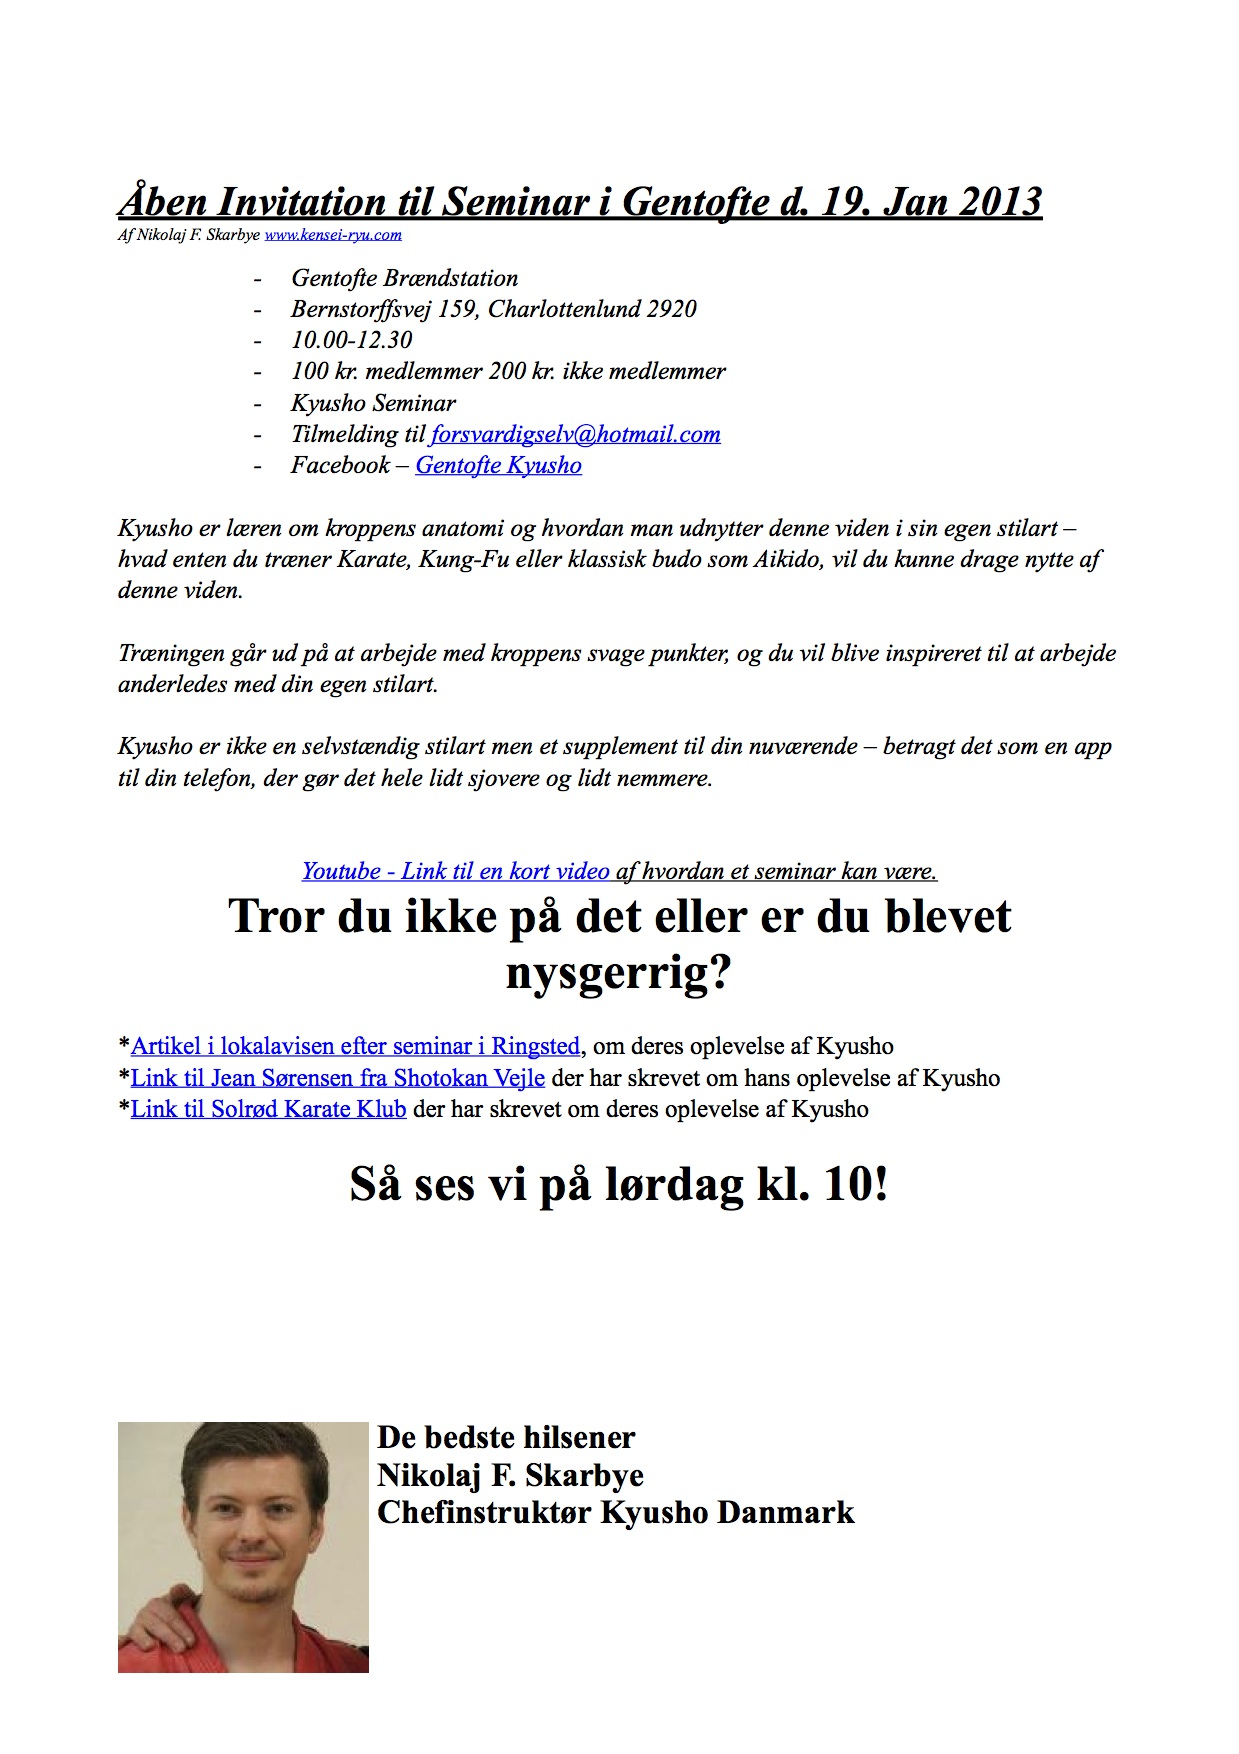 Åben Invitation til Seminar med links